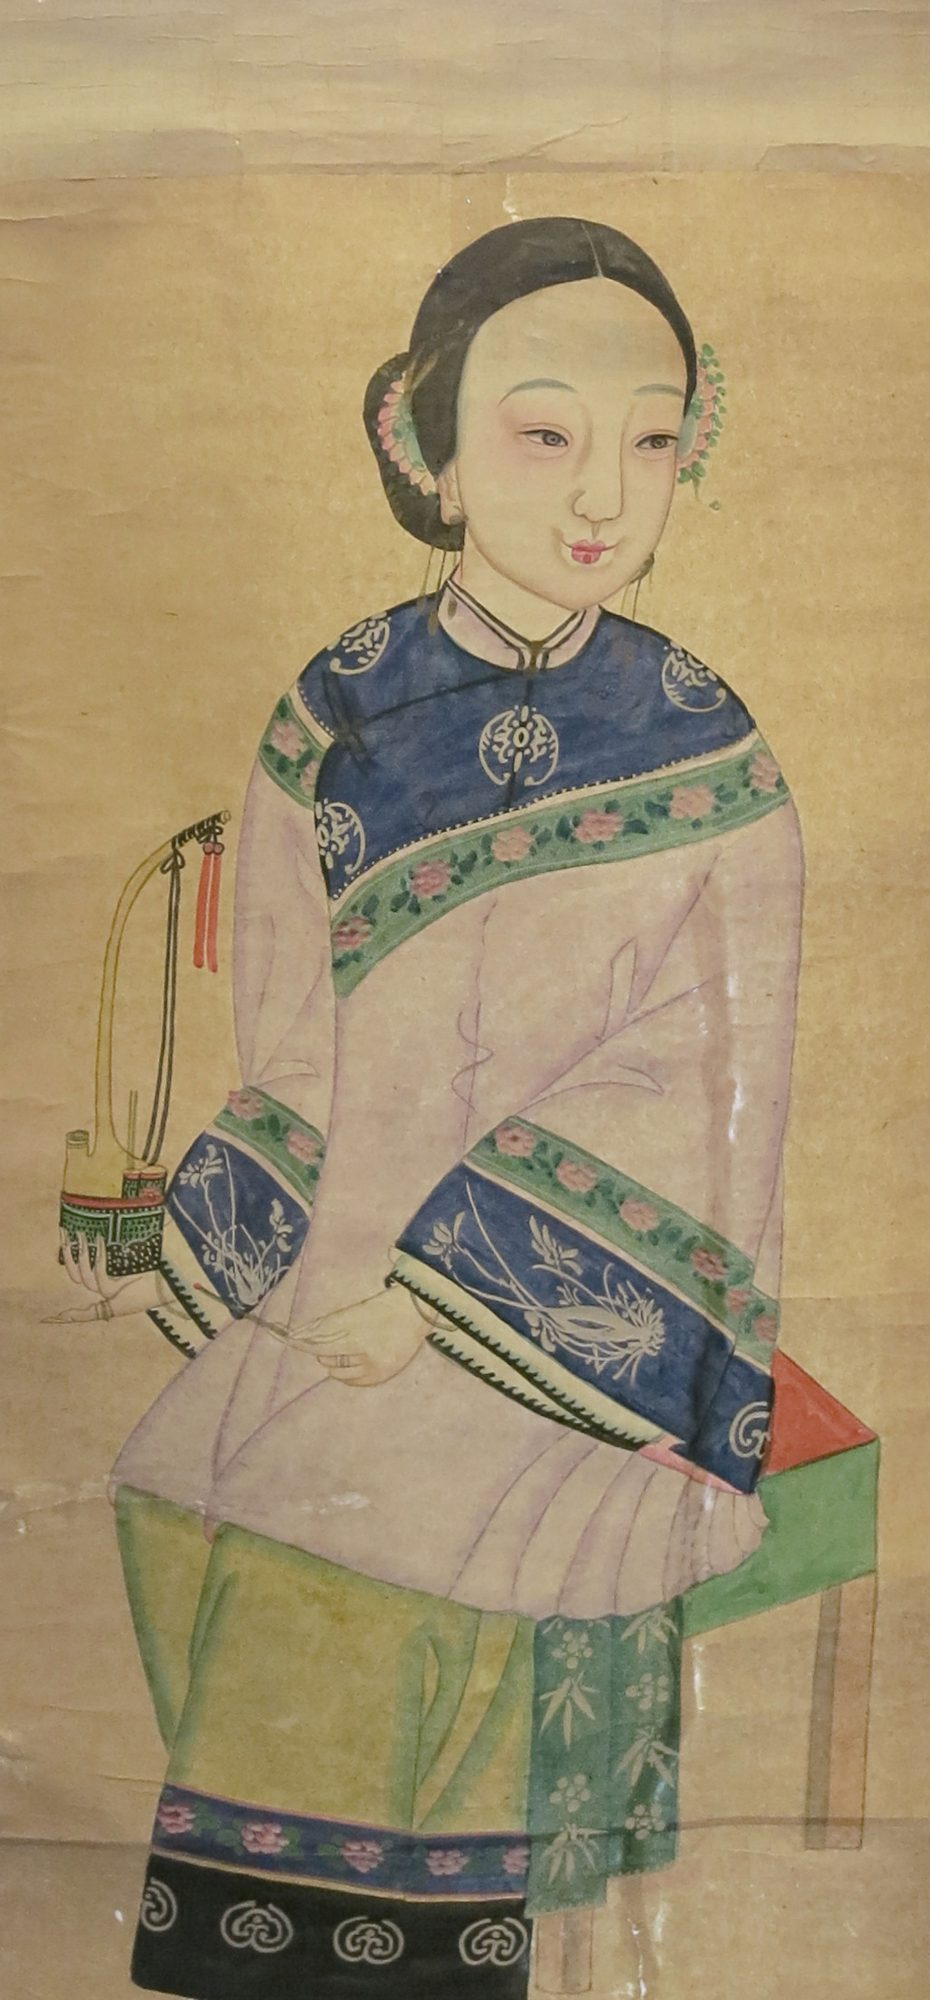 Watercolour depicting a Chinese lady holding a smoking pipe in both hands, mounted on scroll